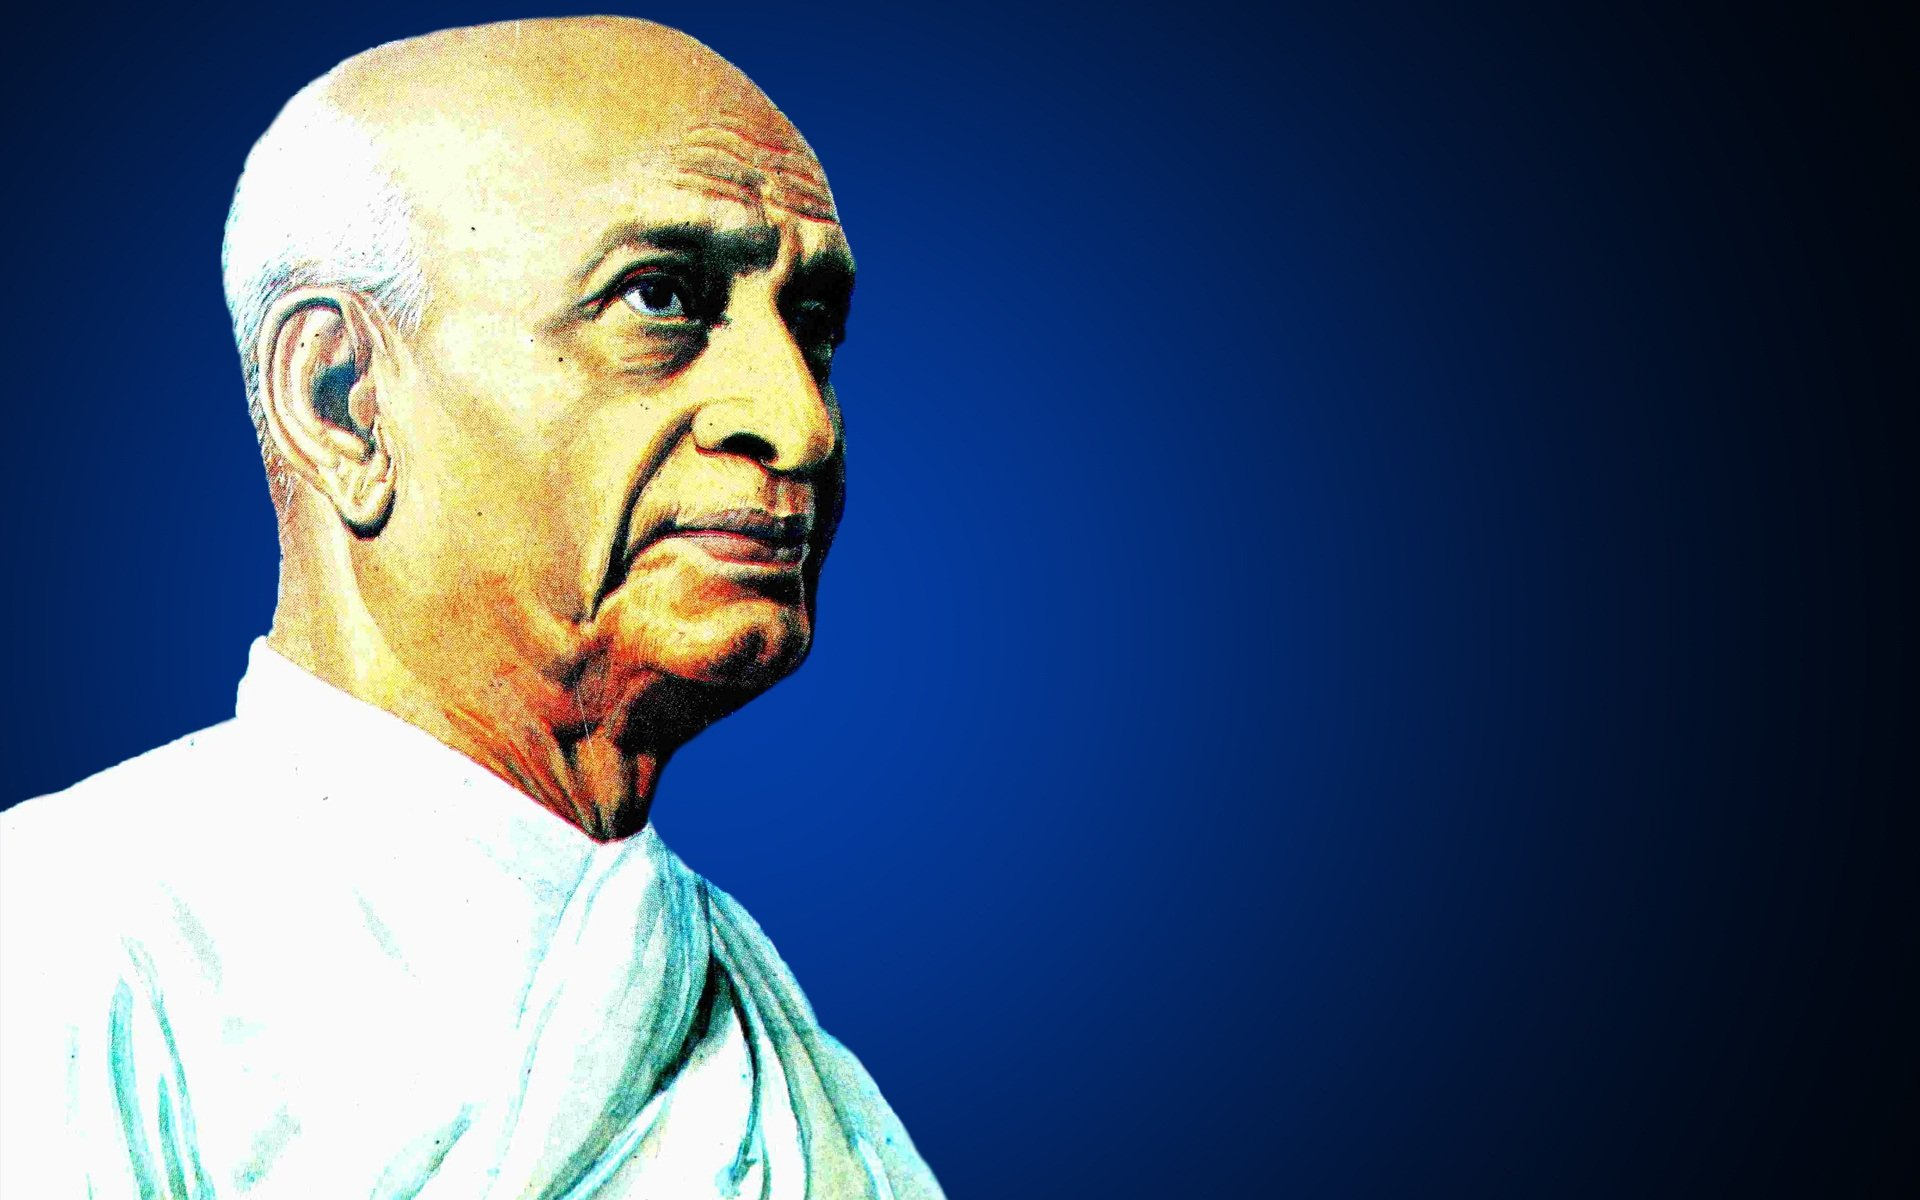 essay of sardar vallabhbhai patel Essay on sardar vallabhbhai patel in english 250 words on paper, open university creative writing ma review, best resume writing service in los angeles share.